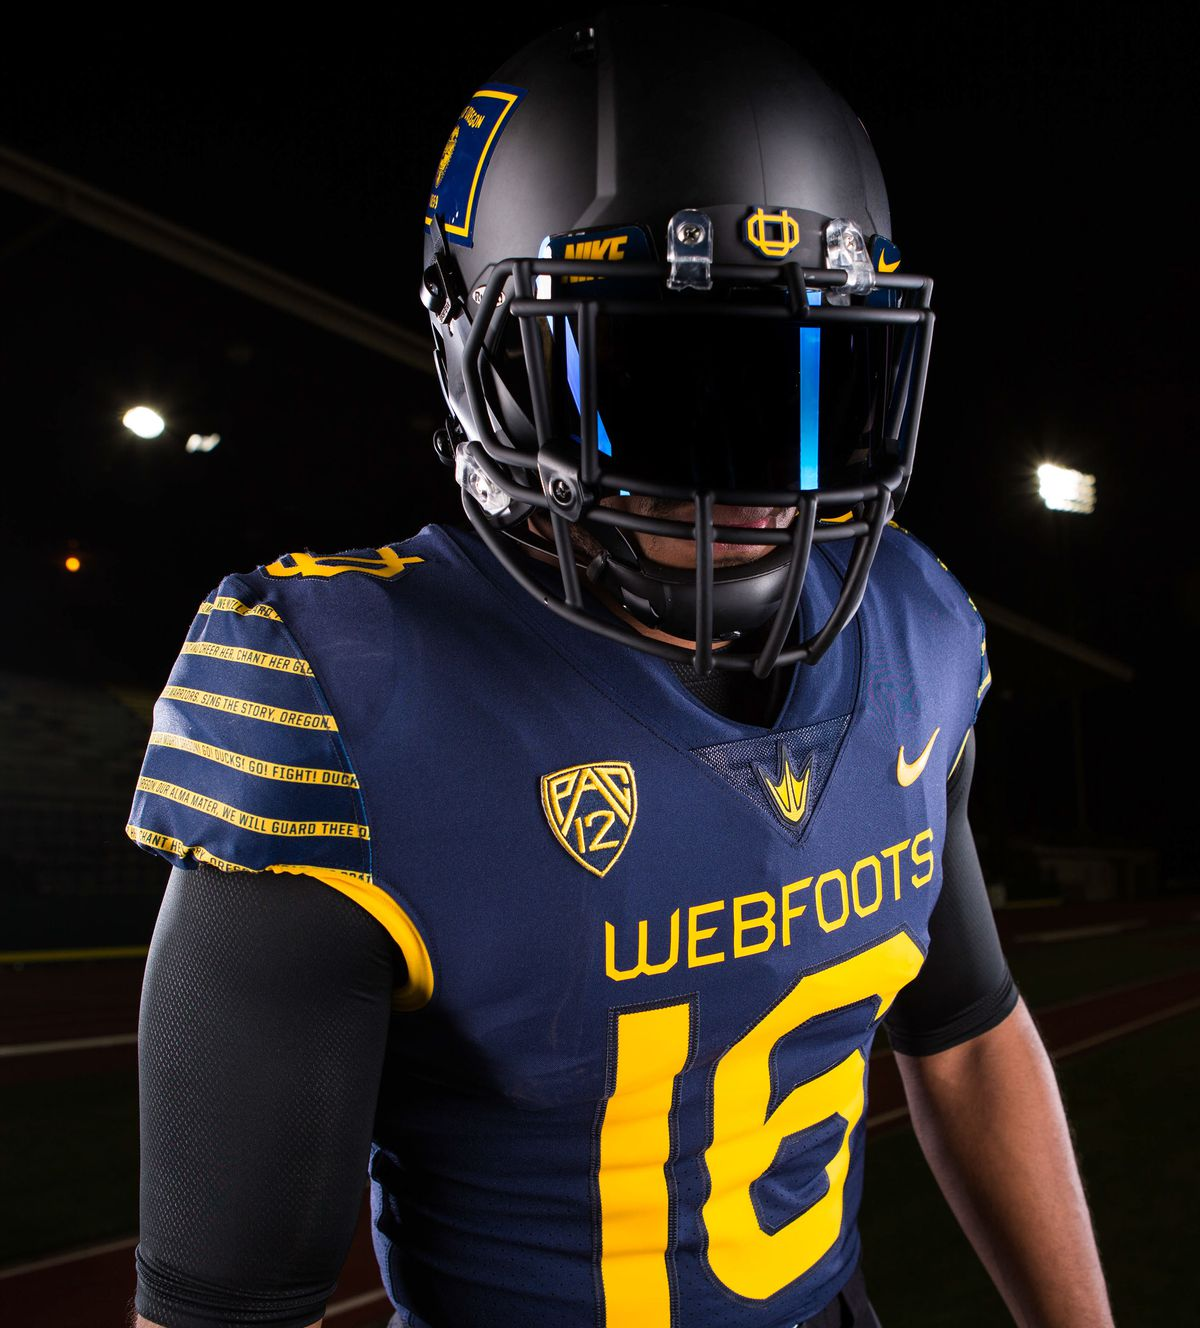 Why Oregons Wearing Blue And Gold Uniforms That Say Webfoots